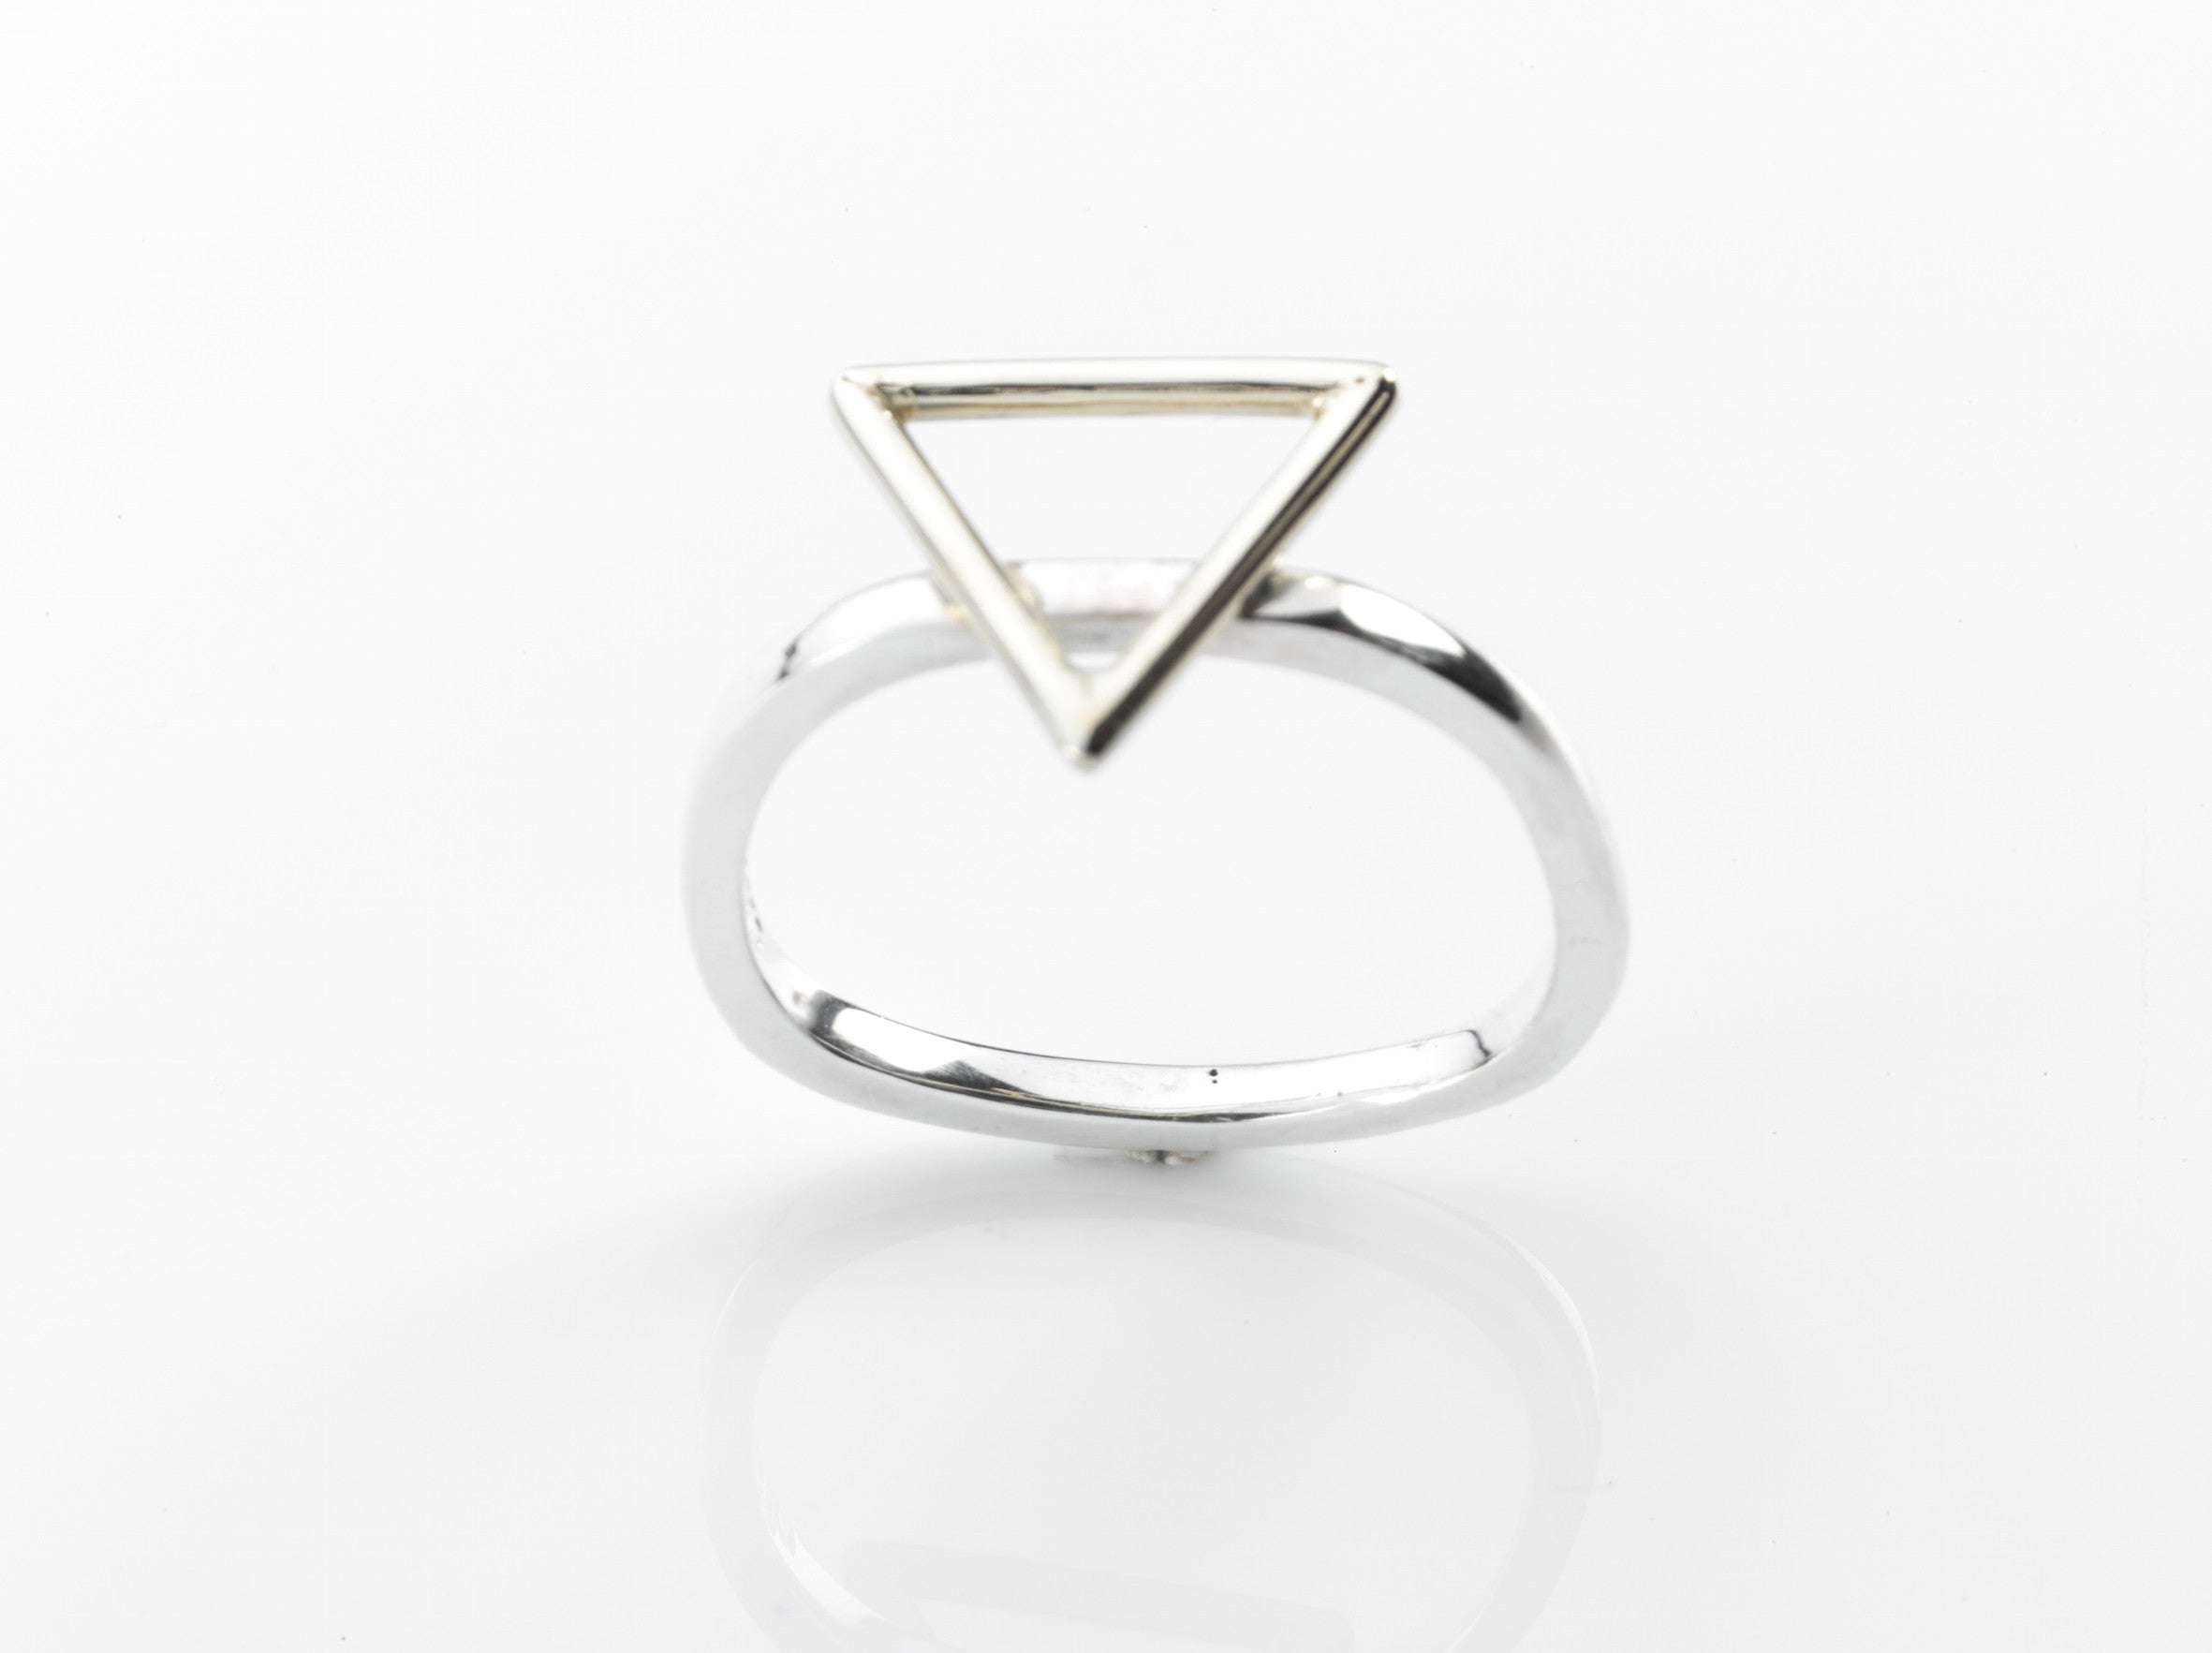 Katie rose jewellery Earth element ring